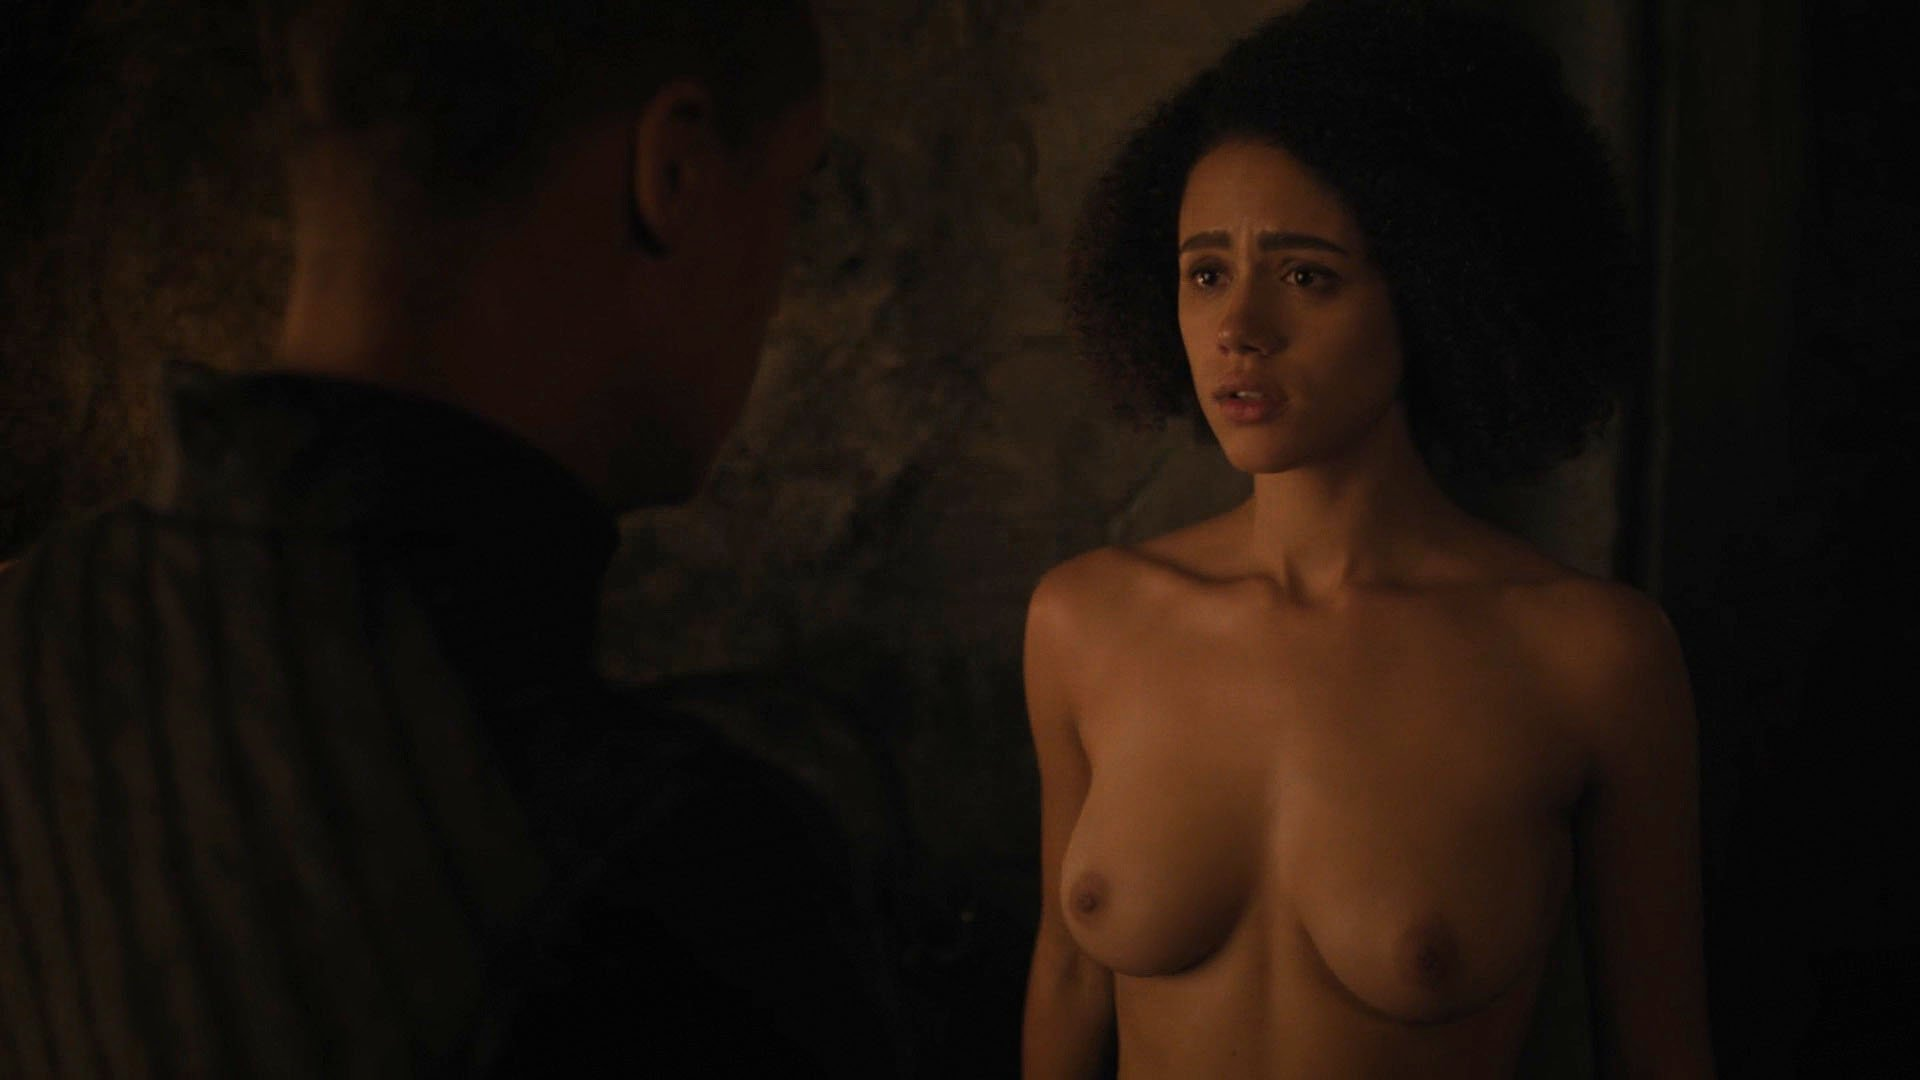 Nude video celebs  Nathalie Emmanuel nude  Game of